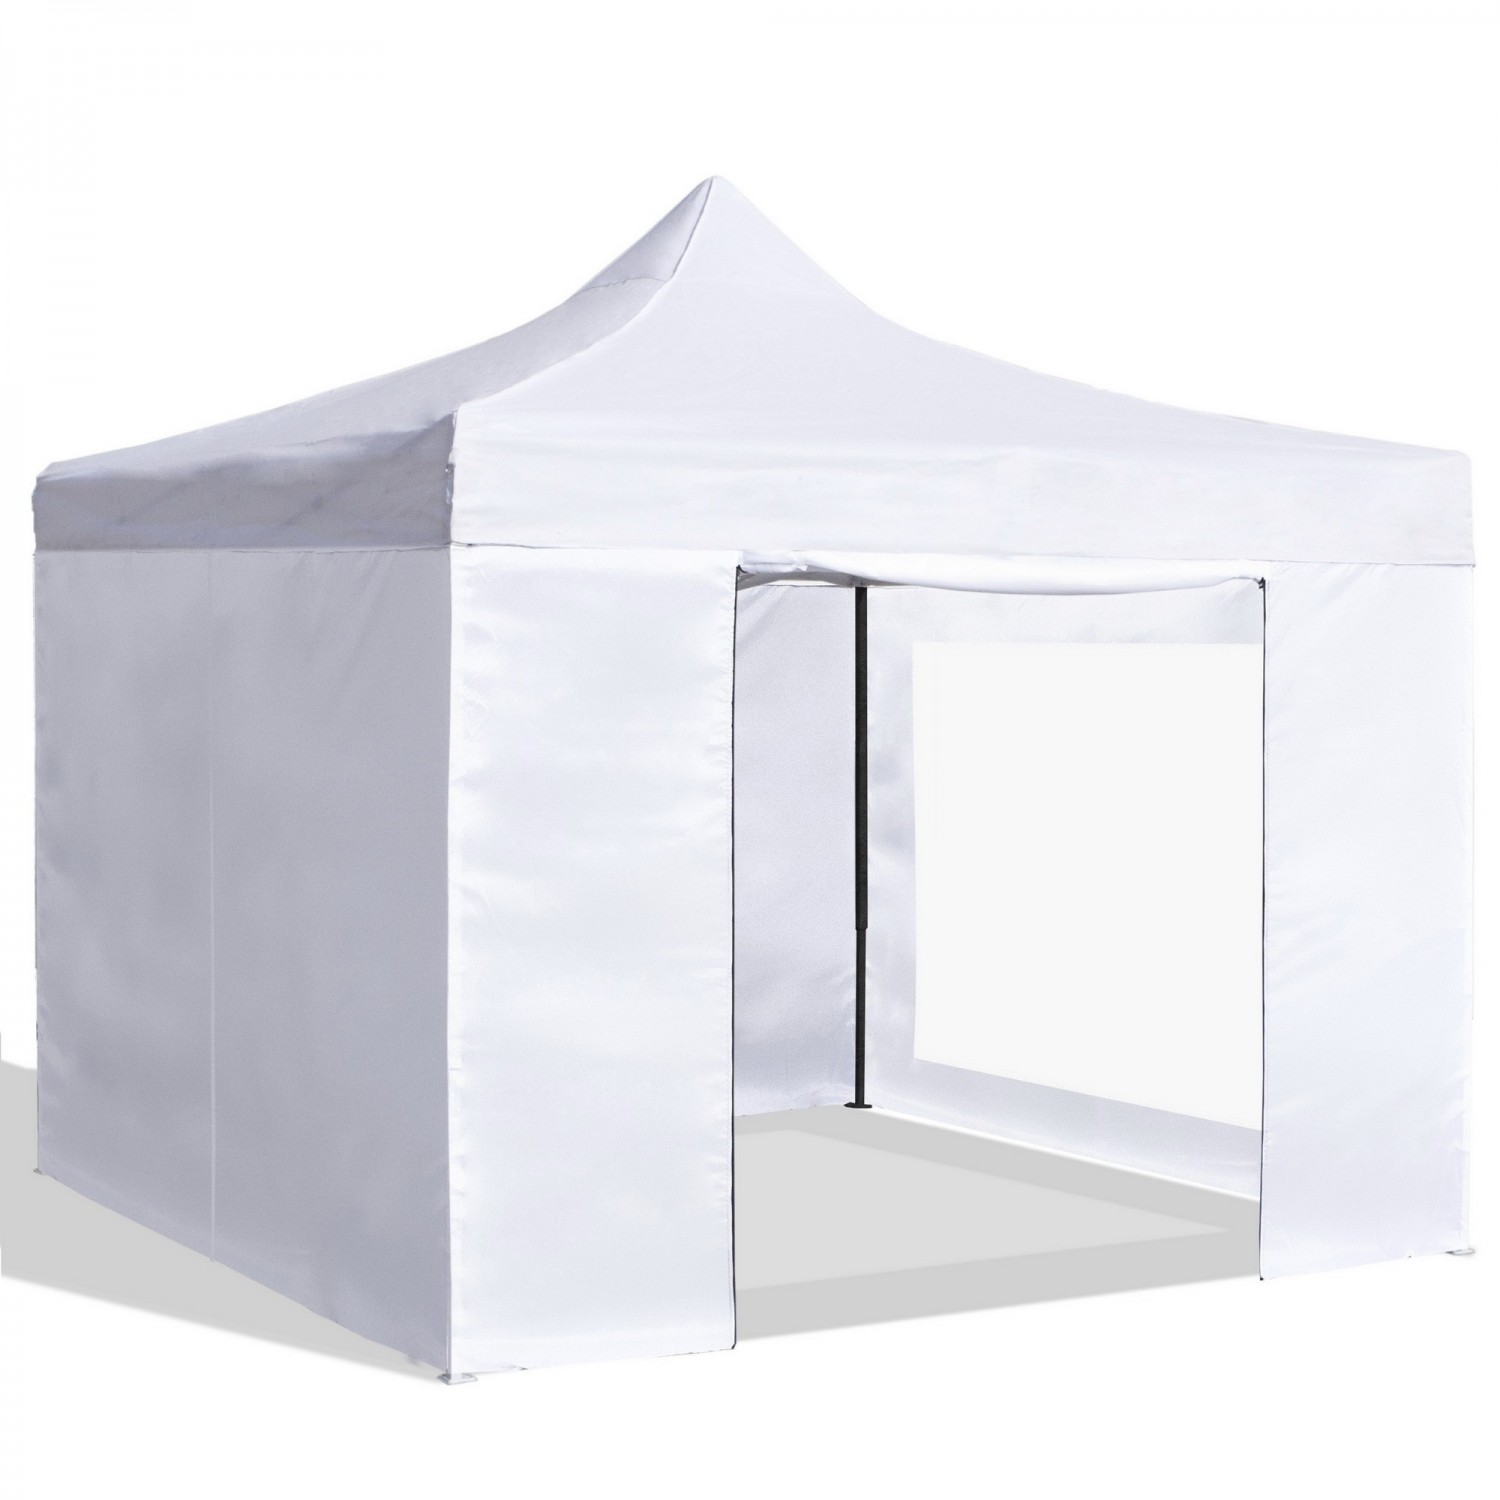 Carpa plegable 3x3 blanca - Carpa 3x3 plegable ...